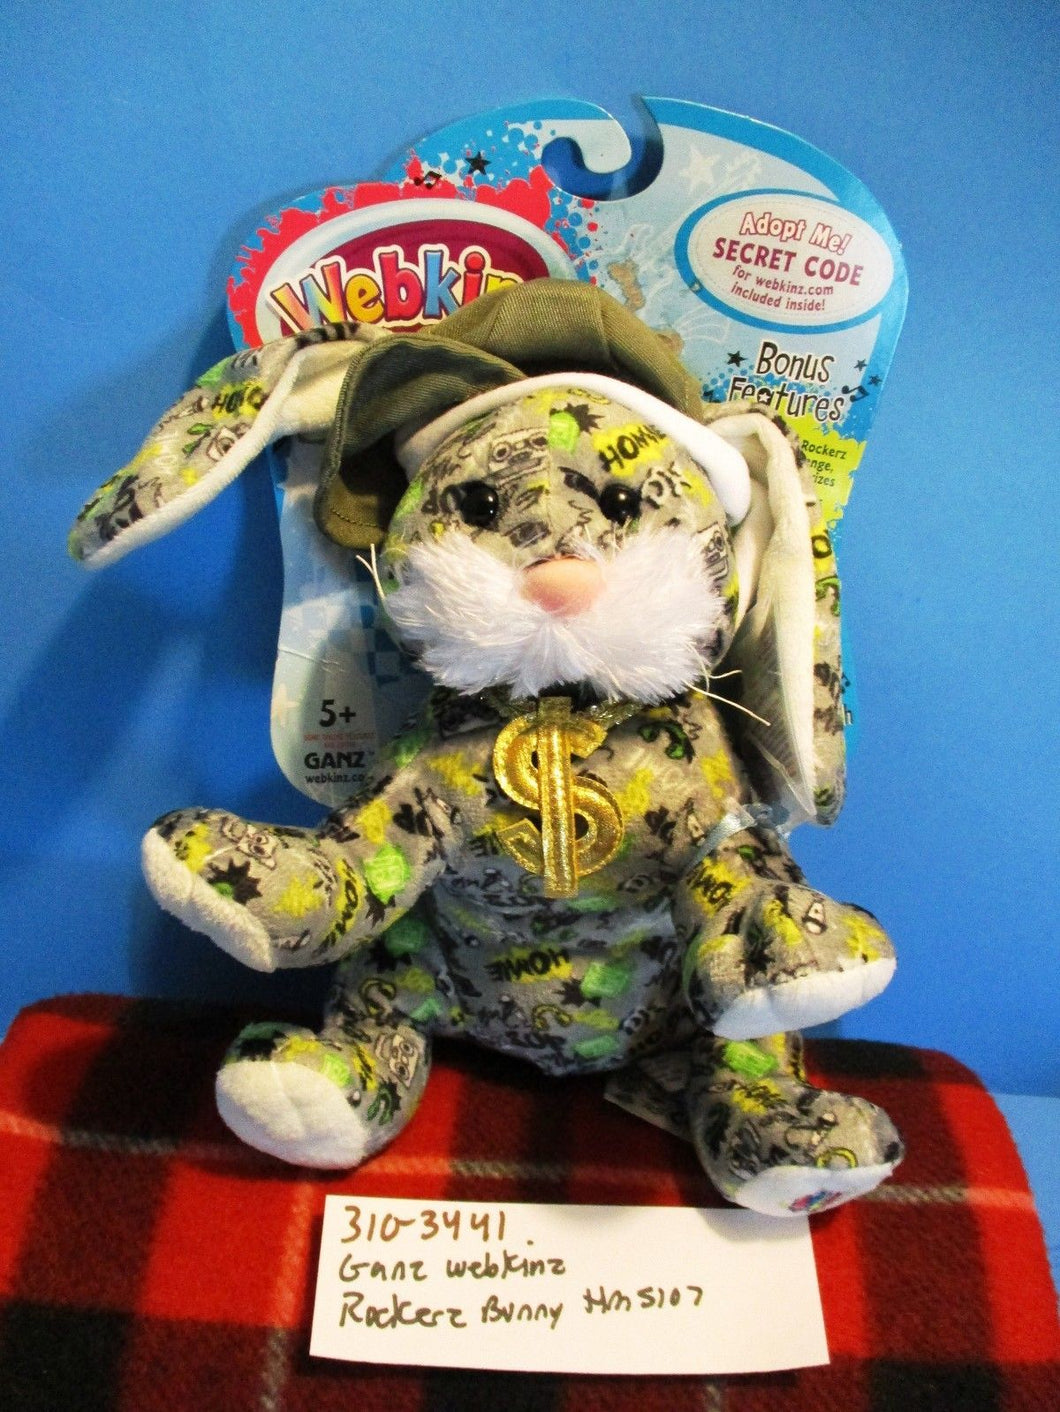 Ganz Webkinz Rockerz Bunny Rabbit HMS107 plush with Code (310-3441)